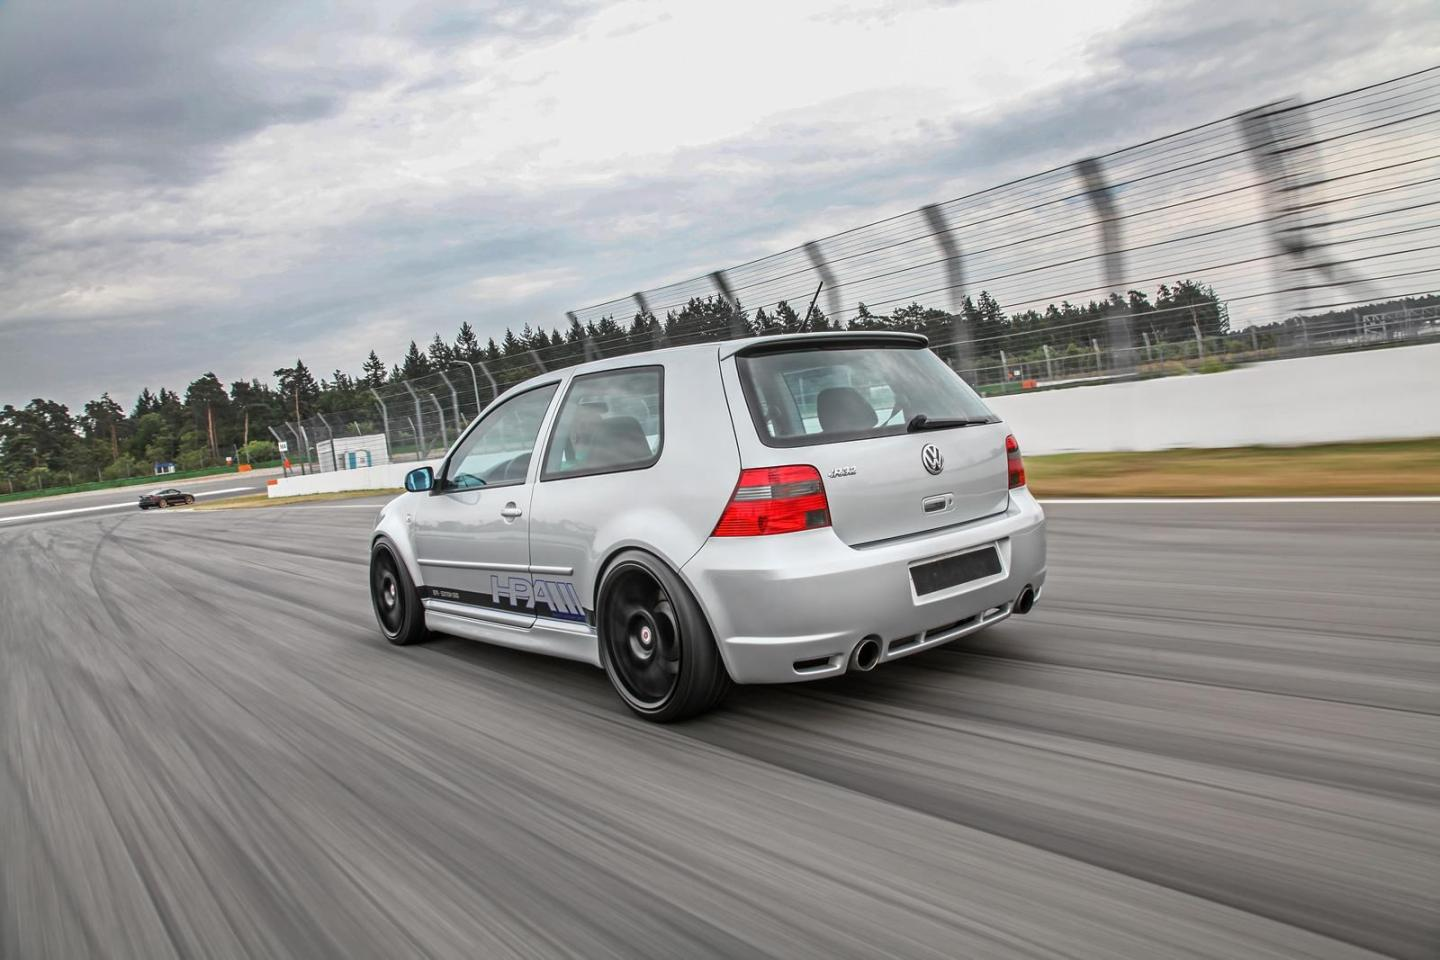 Vw_Golf_IV_R32_HPerformance_2